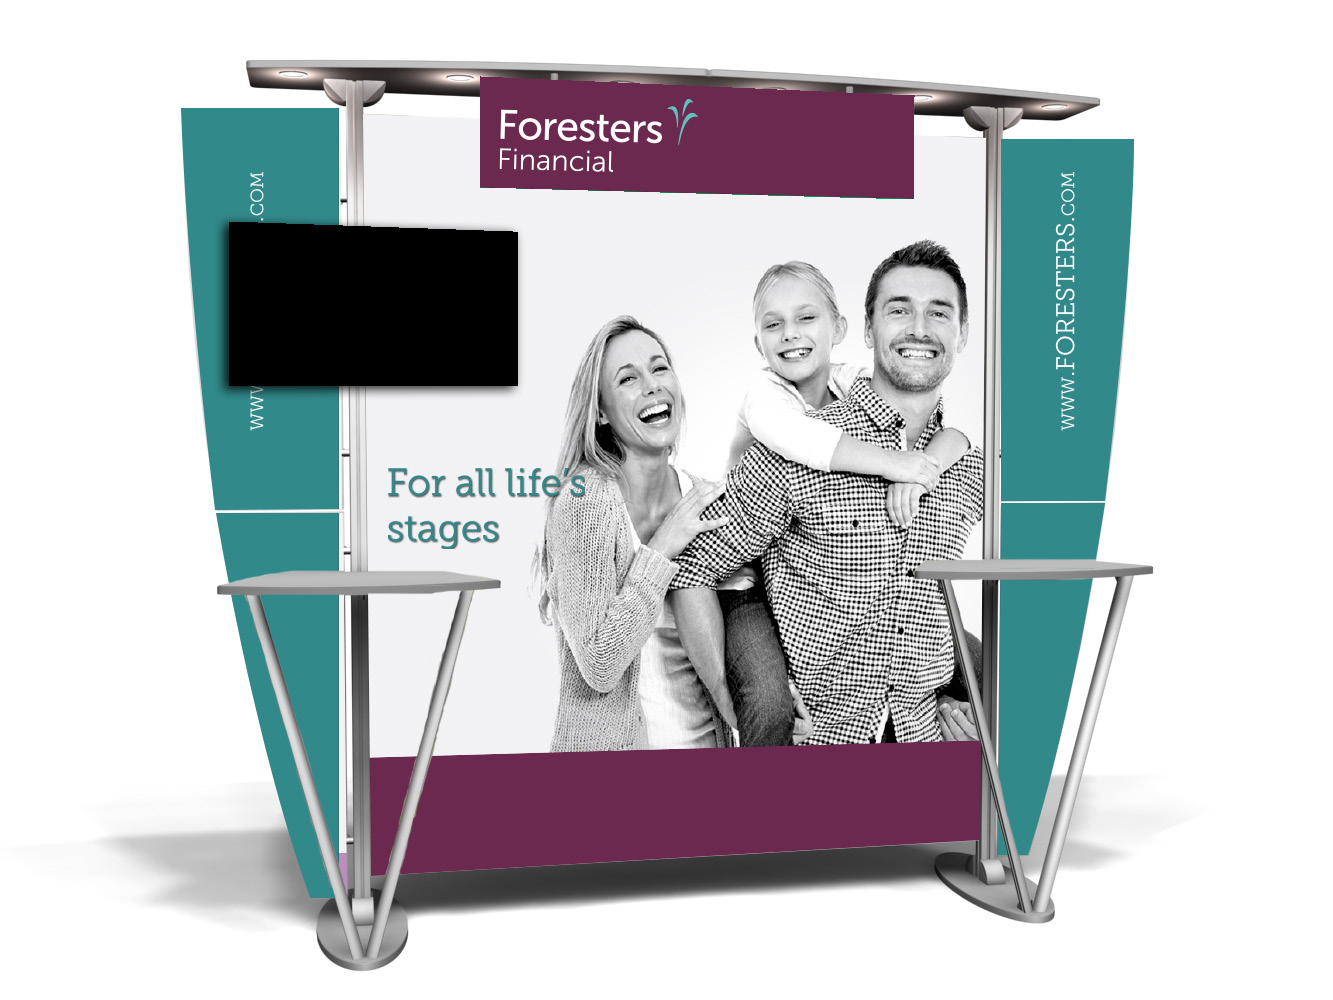 Foresters_modularbooth_mockup_1.jpg